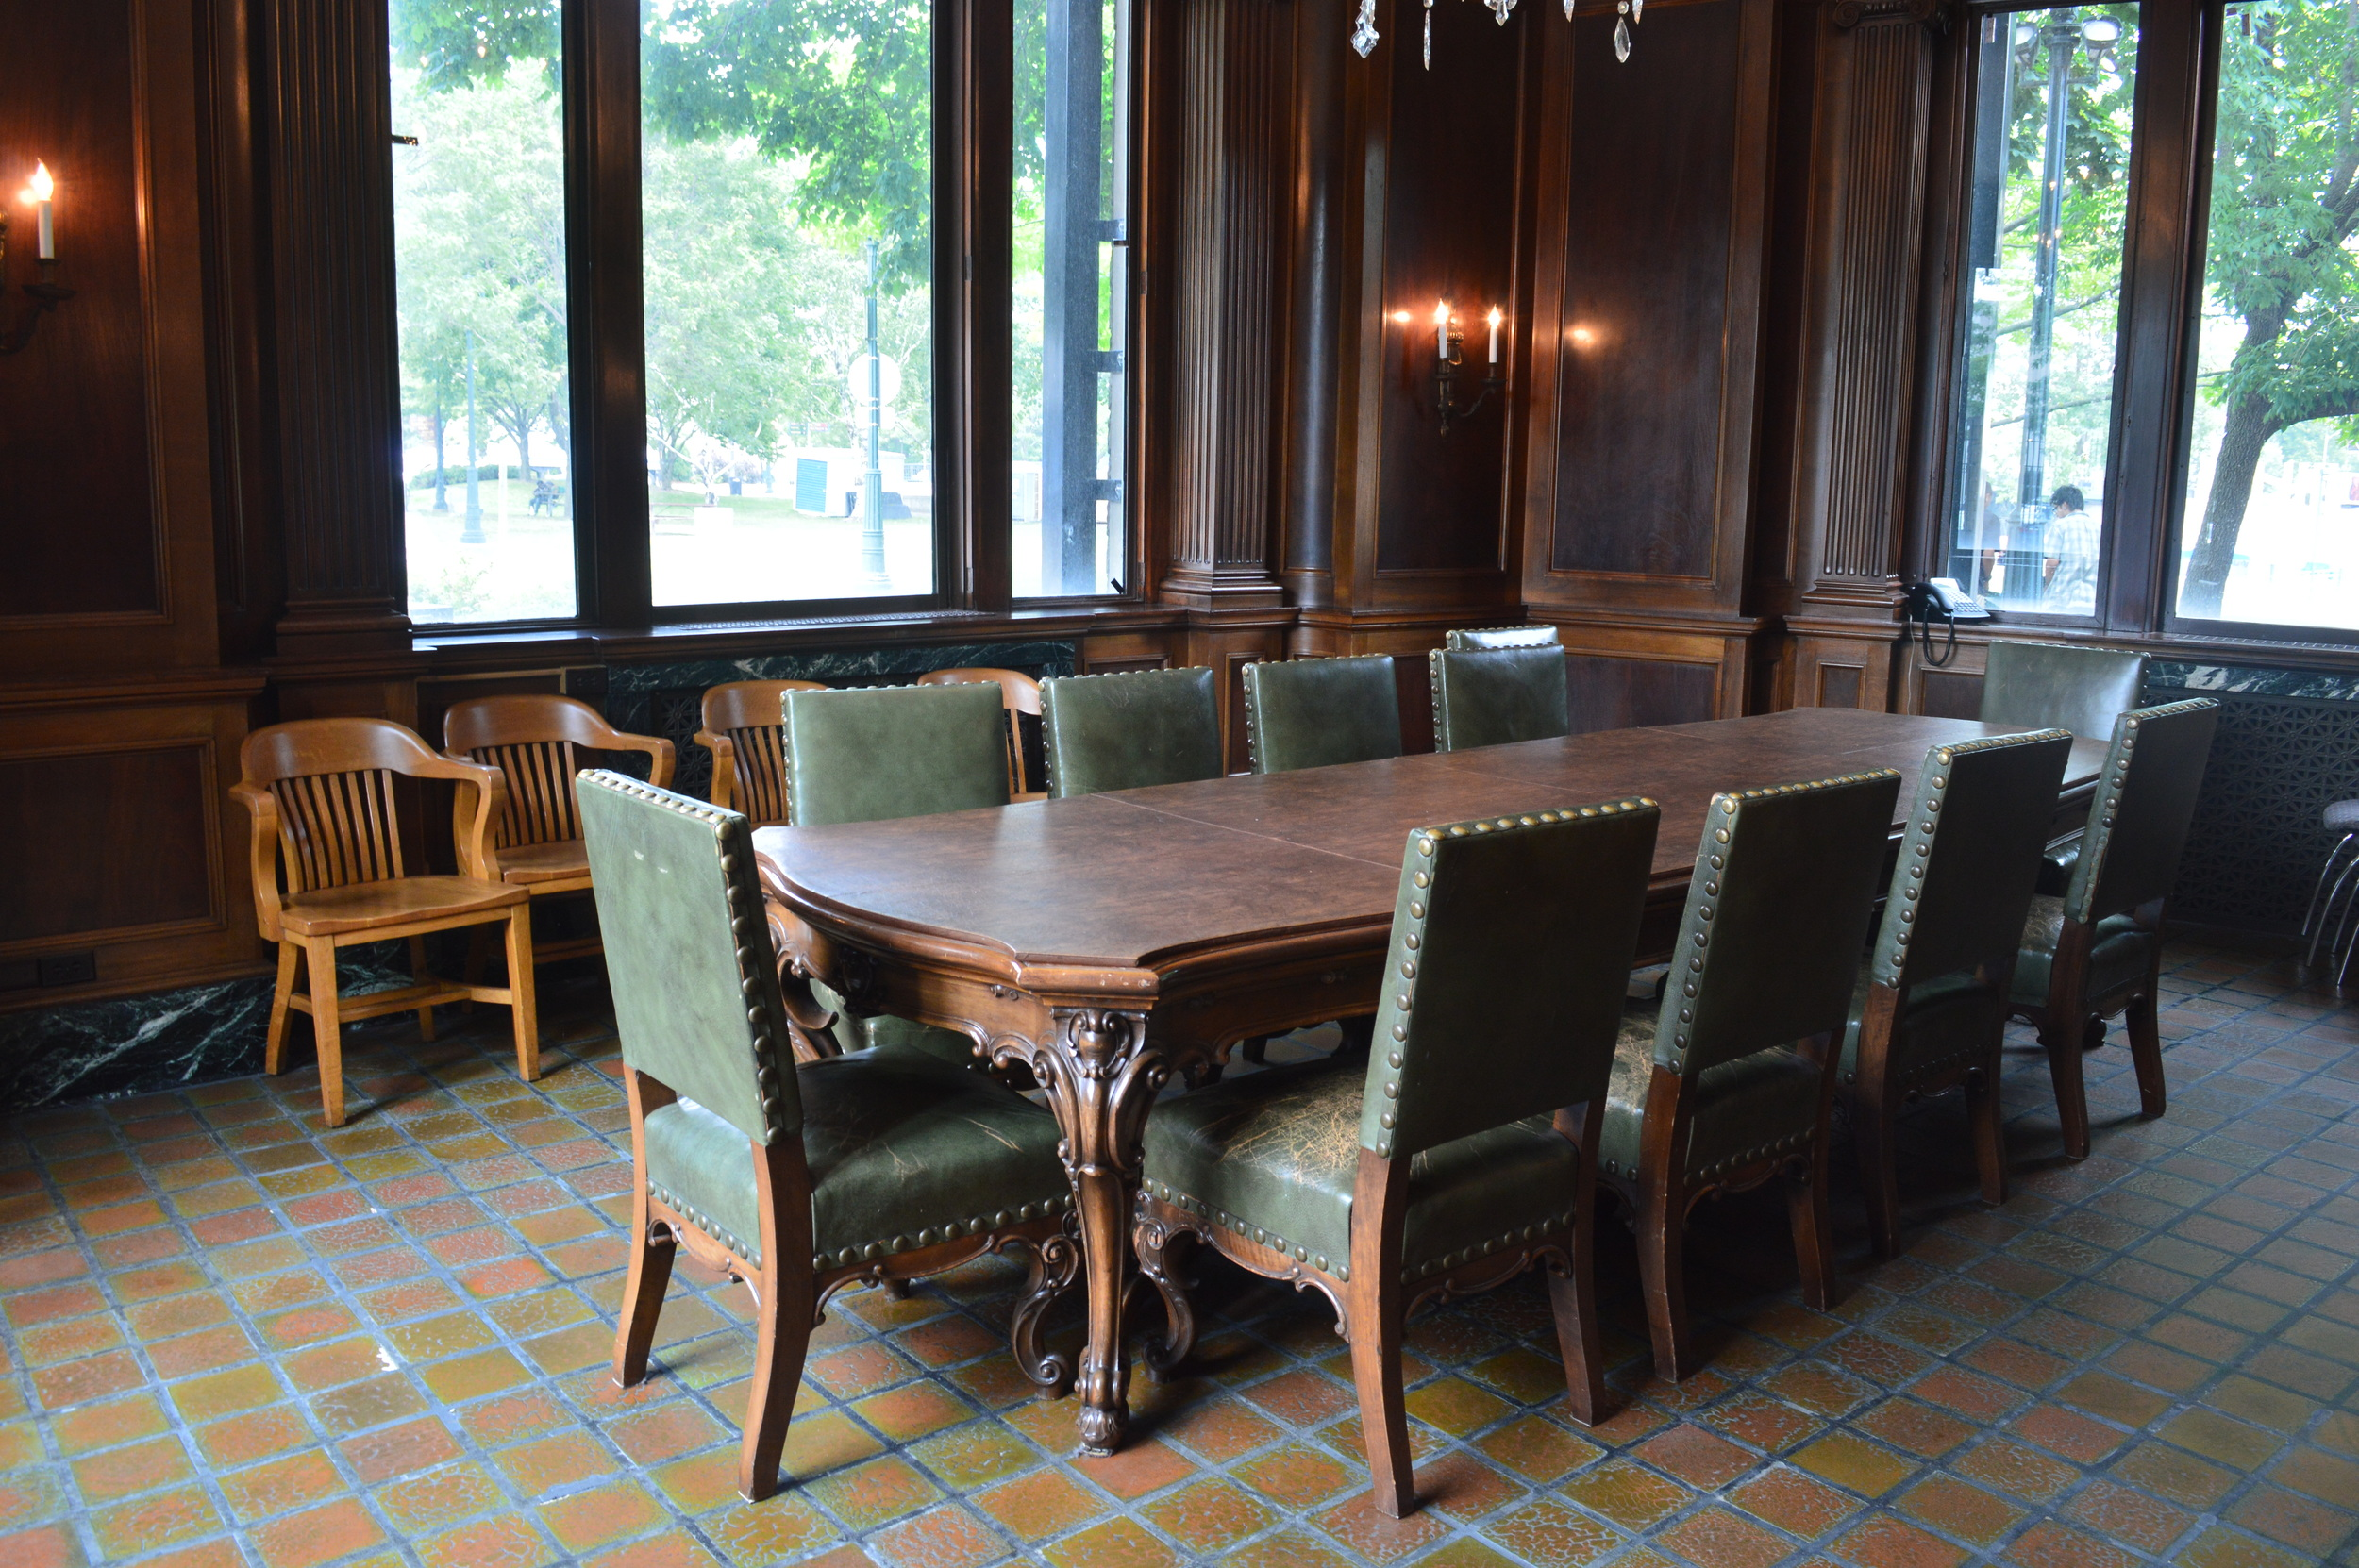 This conference room was furnished in 1967 by the HIstorical Society in memory of Albert Elser, the president of the bank in 1928, and Alfred Elser, a member of the board of directors.